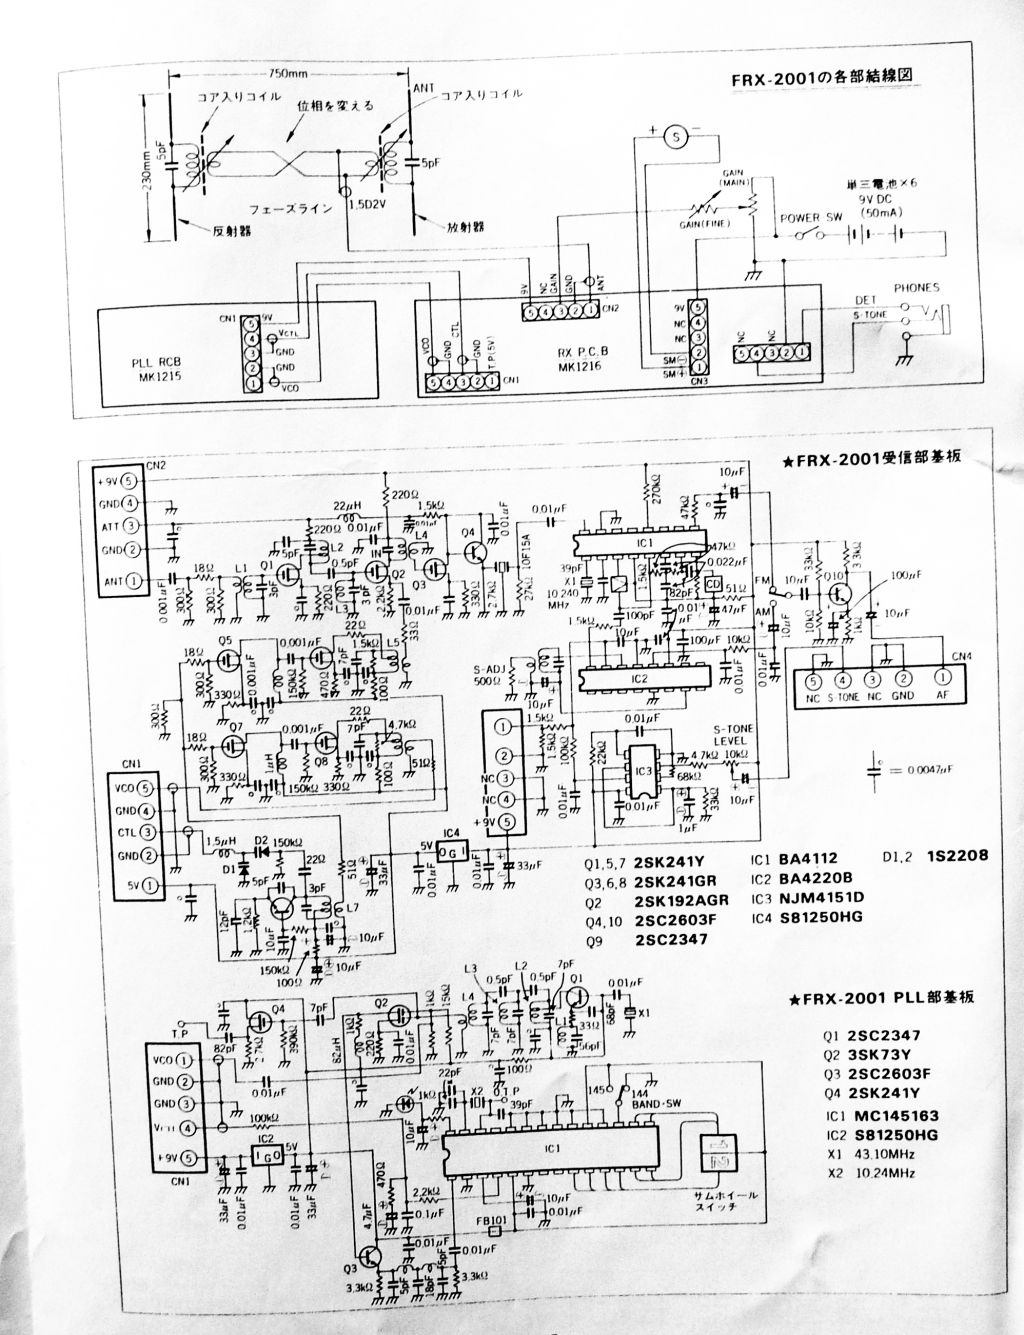 Results Page 8 About Passive Stereo Mixer Searching Circuits At Bh1417f Fm Transmitter Circuit Design Project 20 Meters Range Software Applications And Programming Resources Amateur Radio Travel Stereogram Art